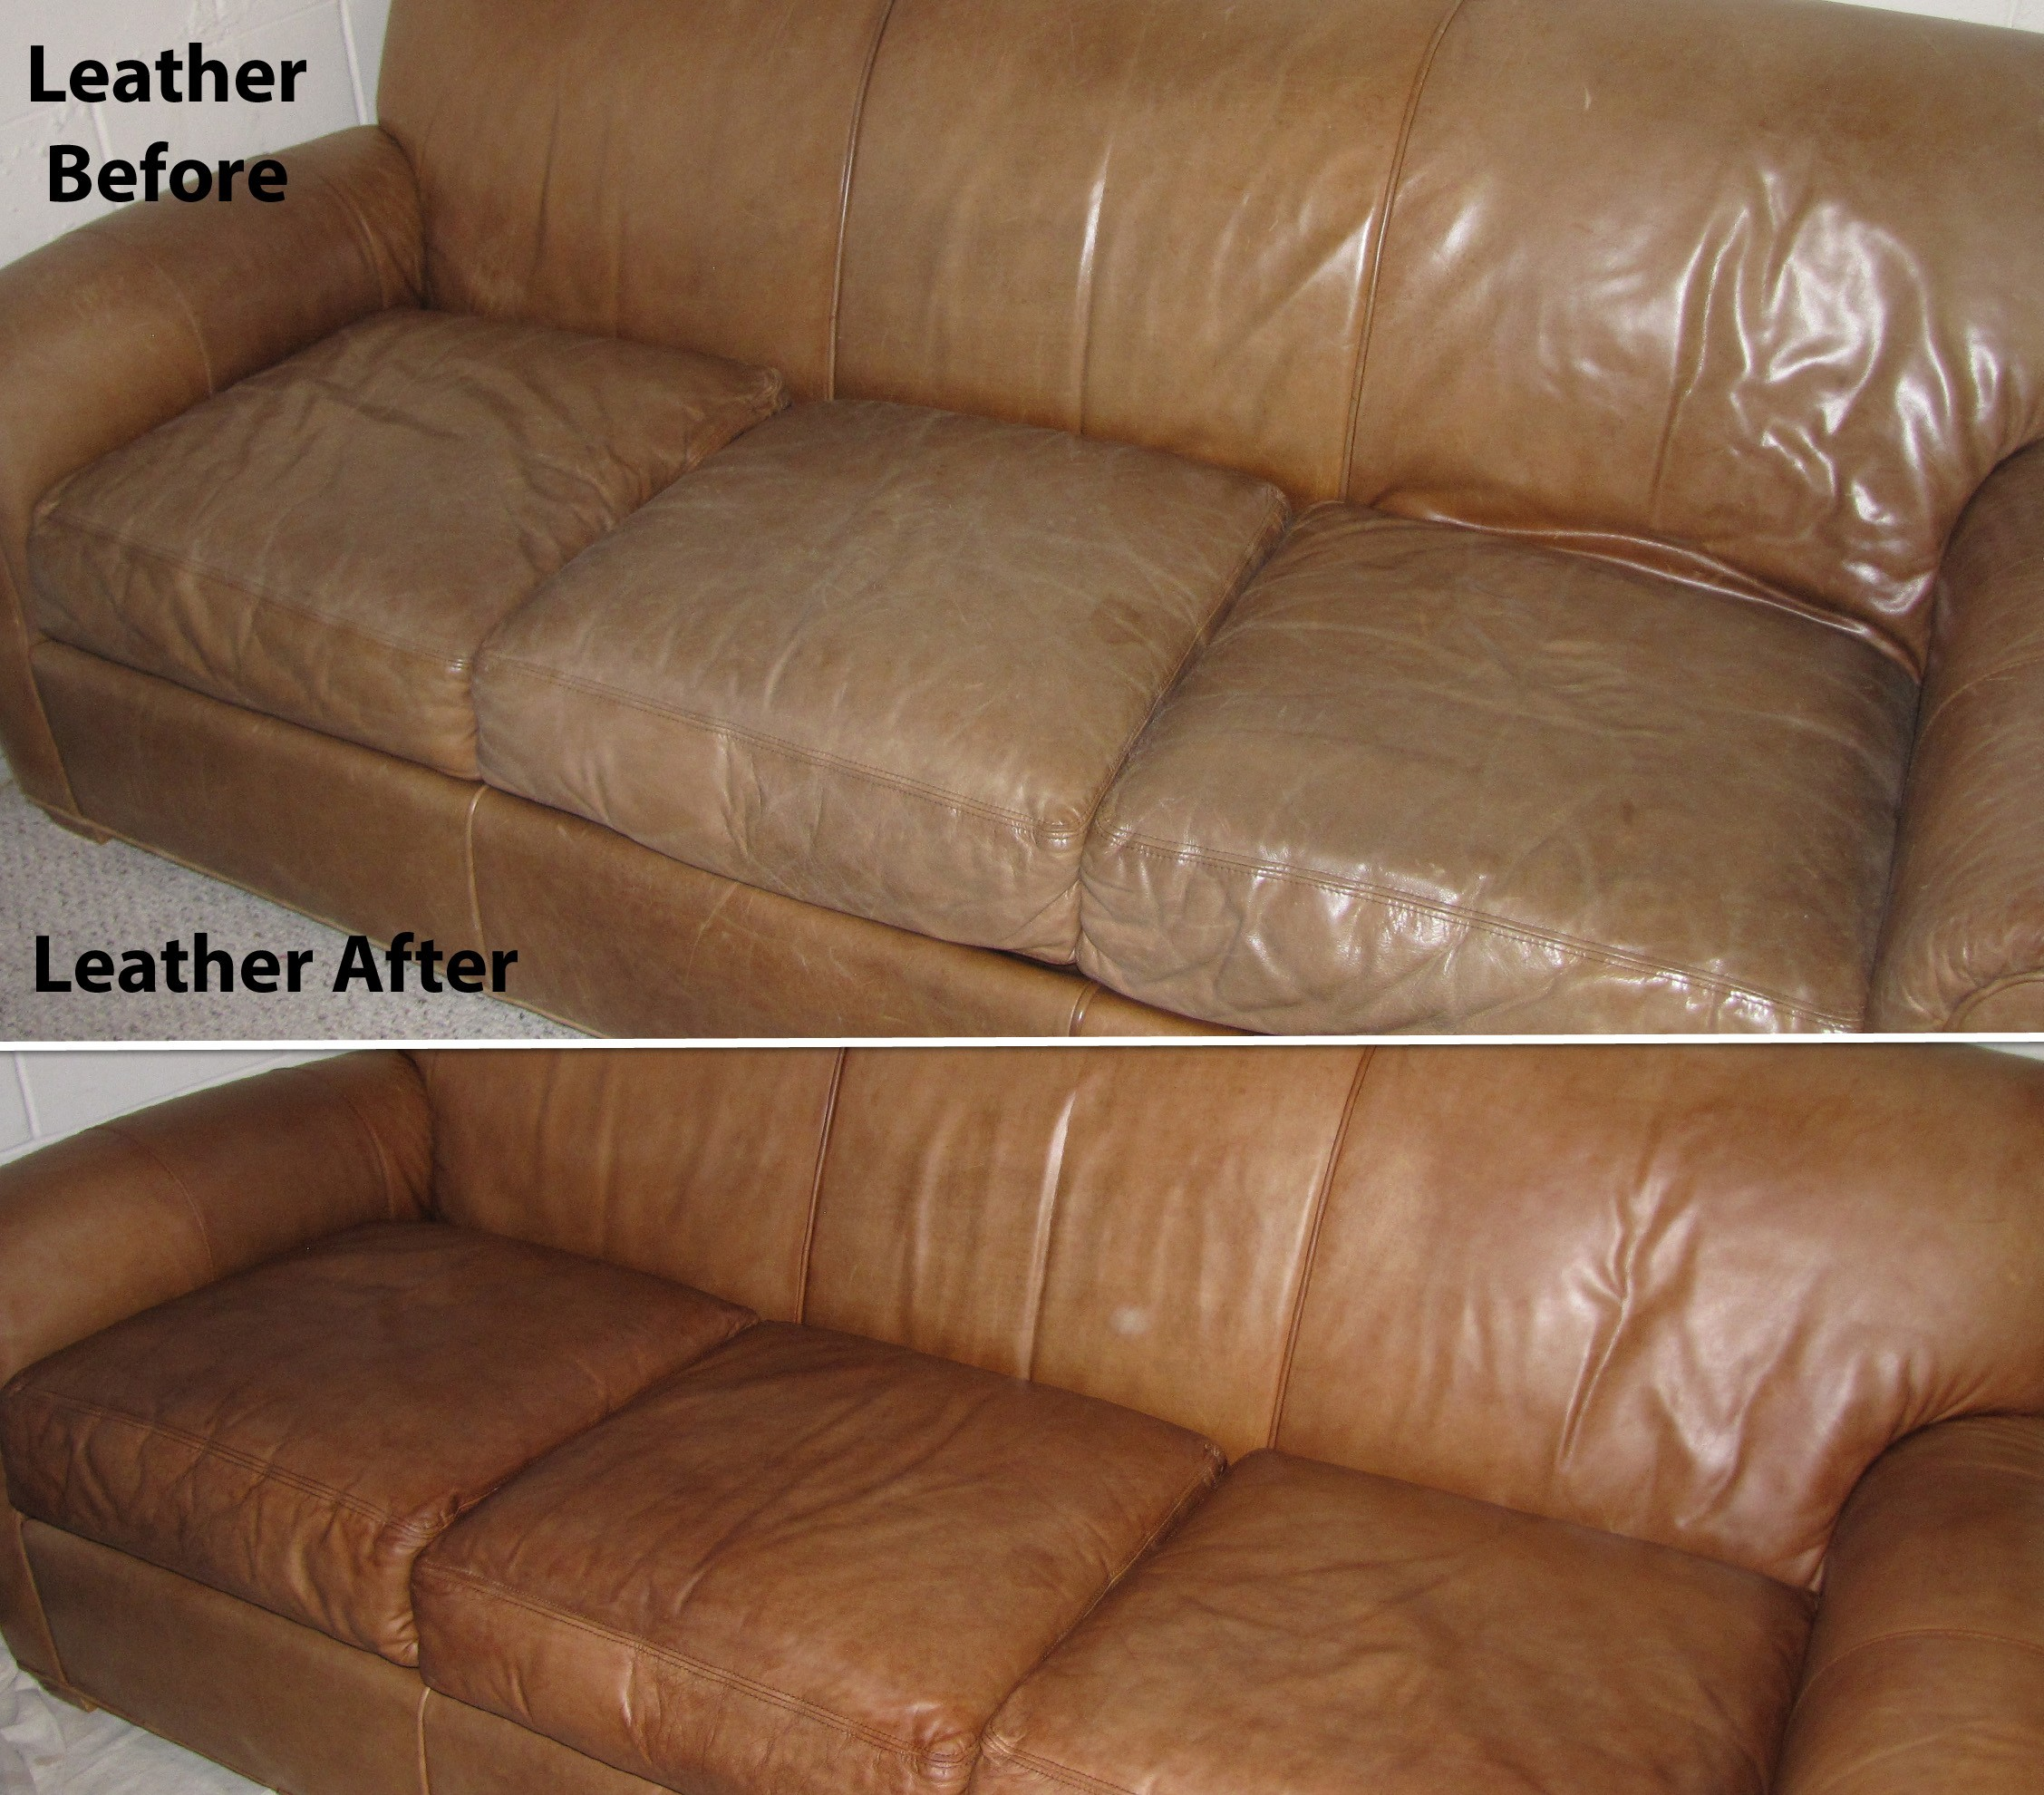 White Leather Sofa Hard To Keep Clean: Leather Sofa Polish Leather Polish For Sofa Sanblasferry